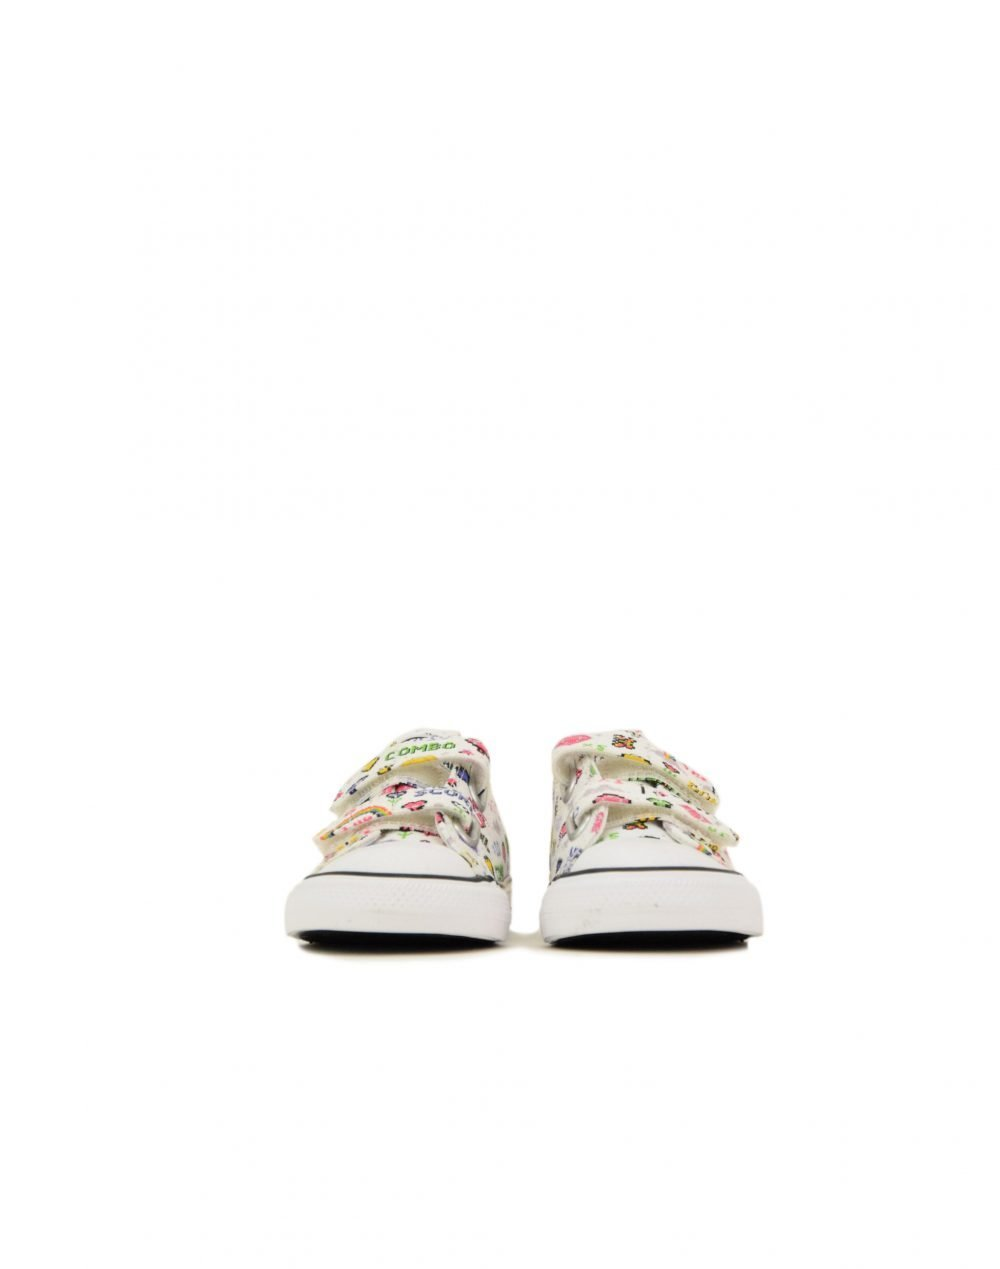 Converse Chuck Taylor All Star 2V Gamer Ox (770172C) White/Black/Bold Pink